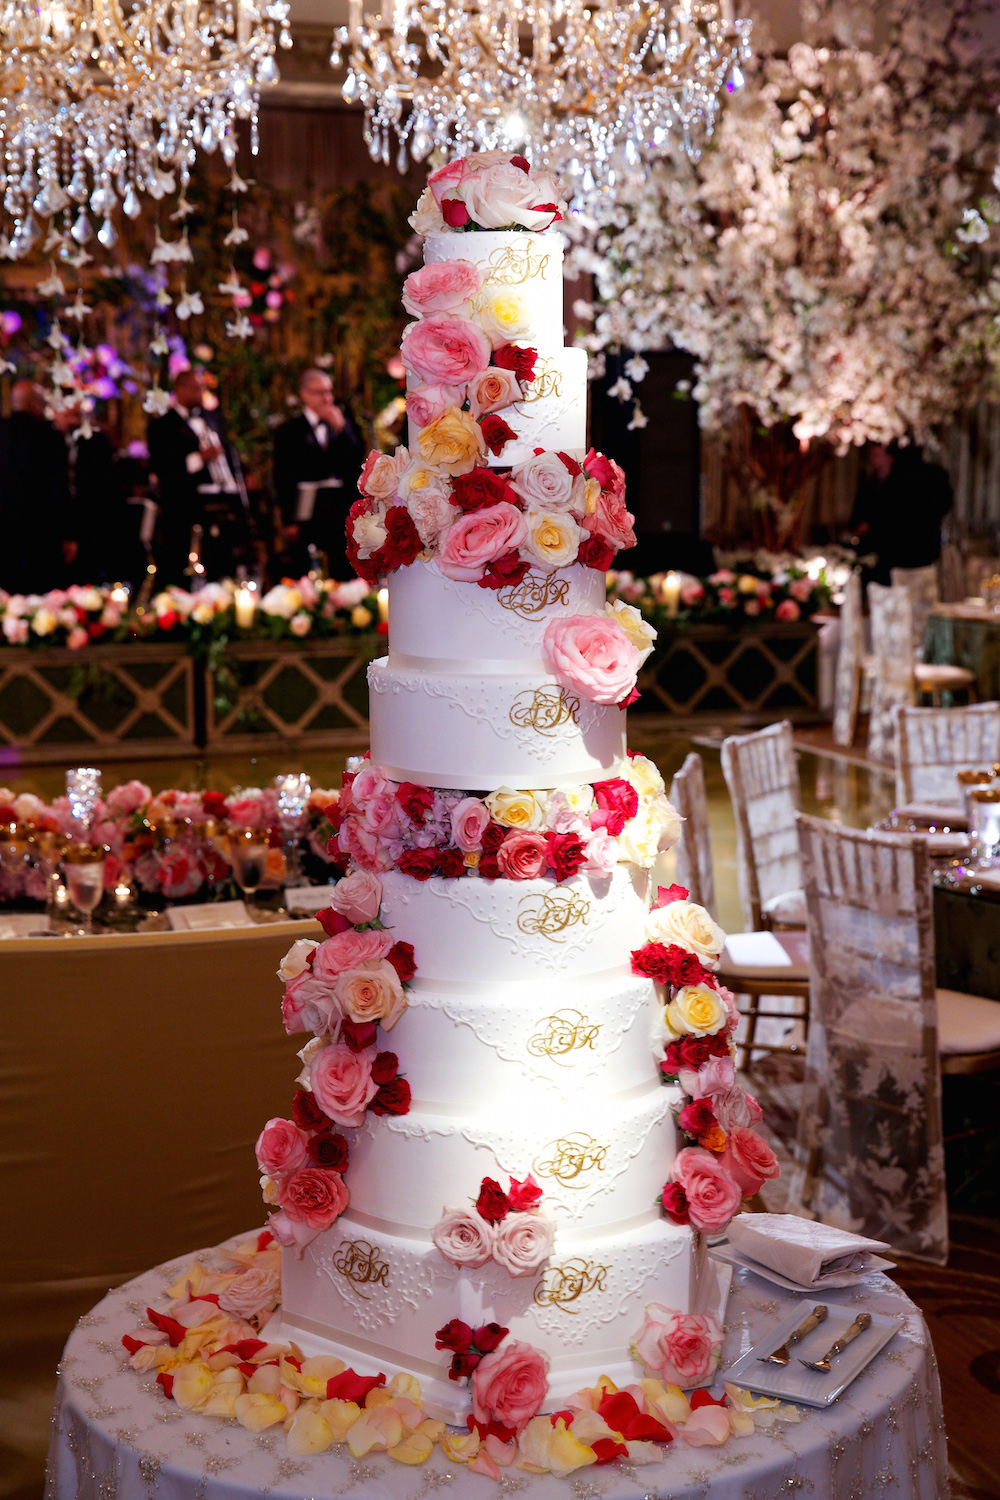 Wedding Cakes  20 Ways to Decorate with Fresh Flowers   Inside Weddings Huge and tall wedding cake with fresh red and pink flowers